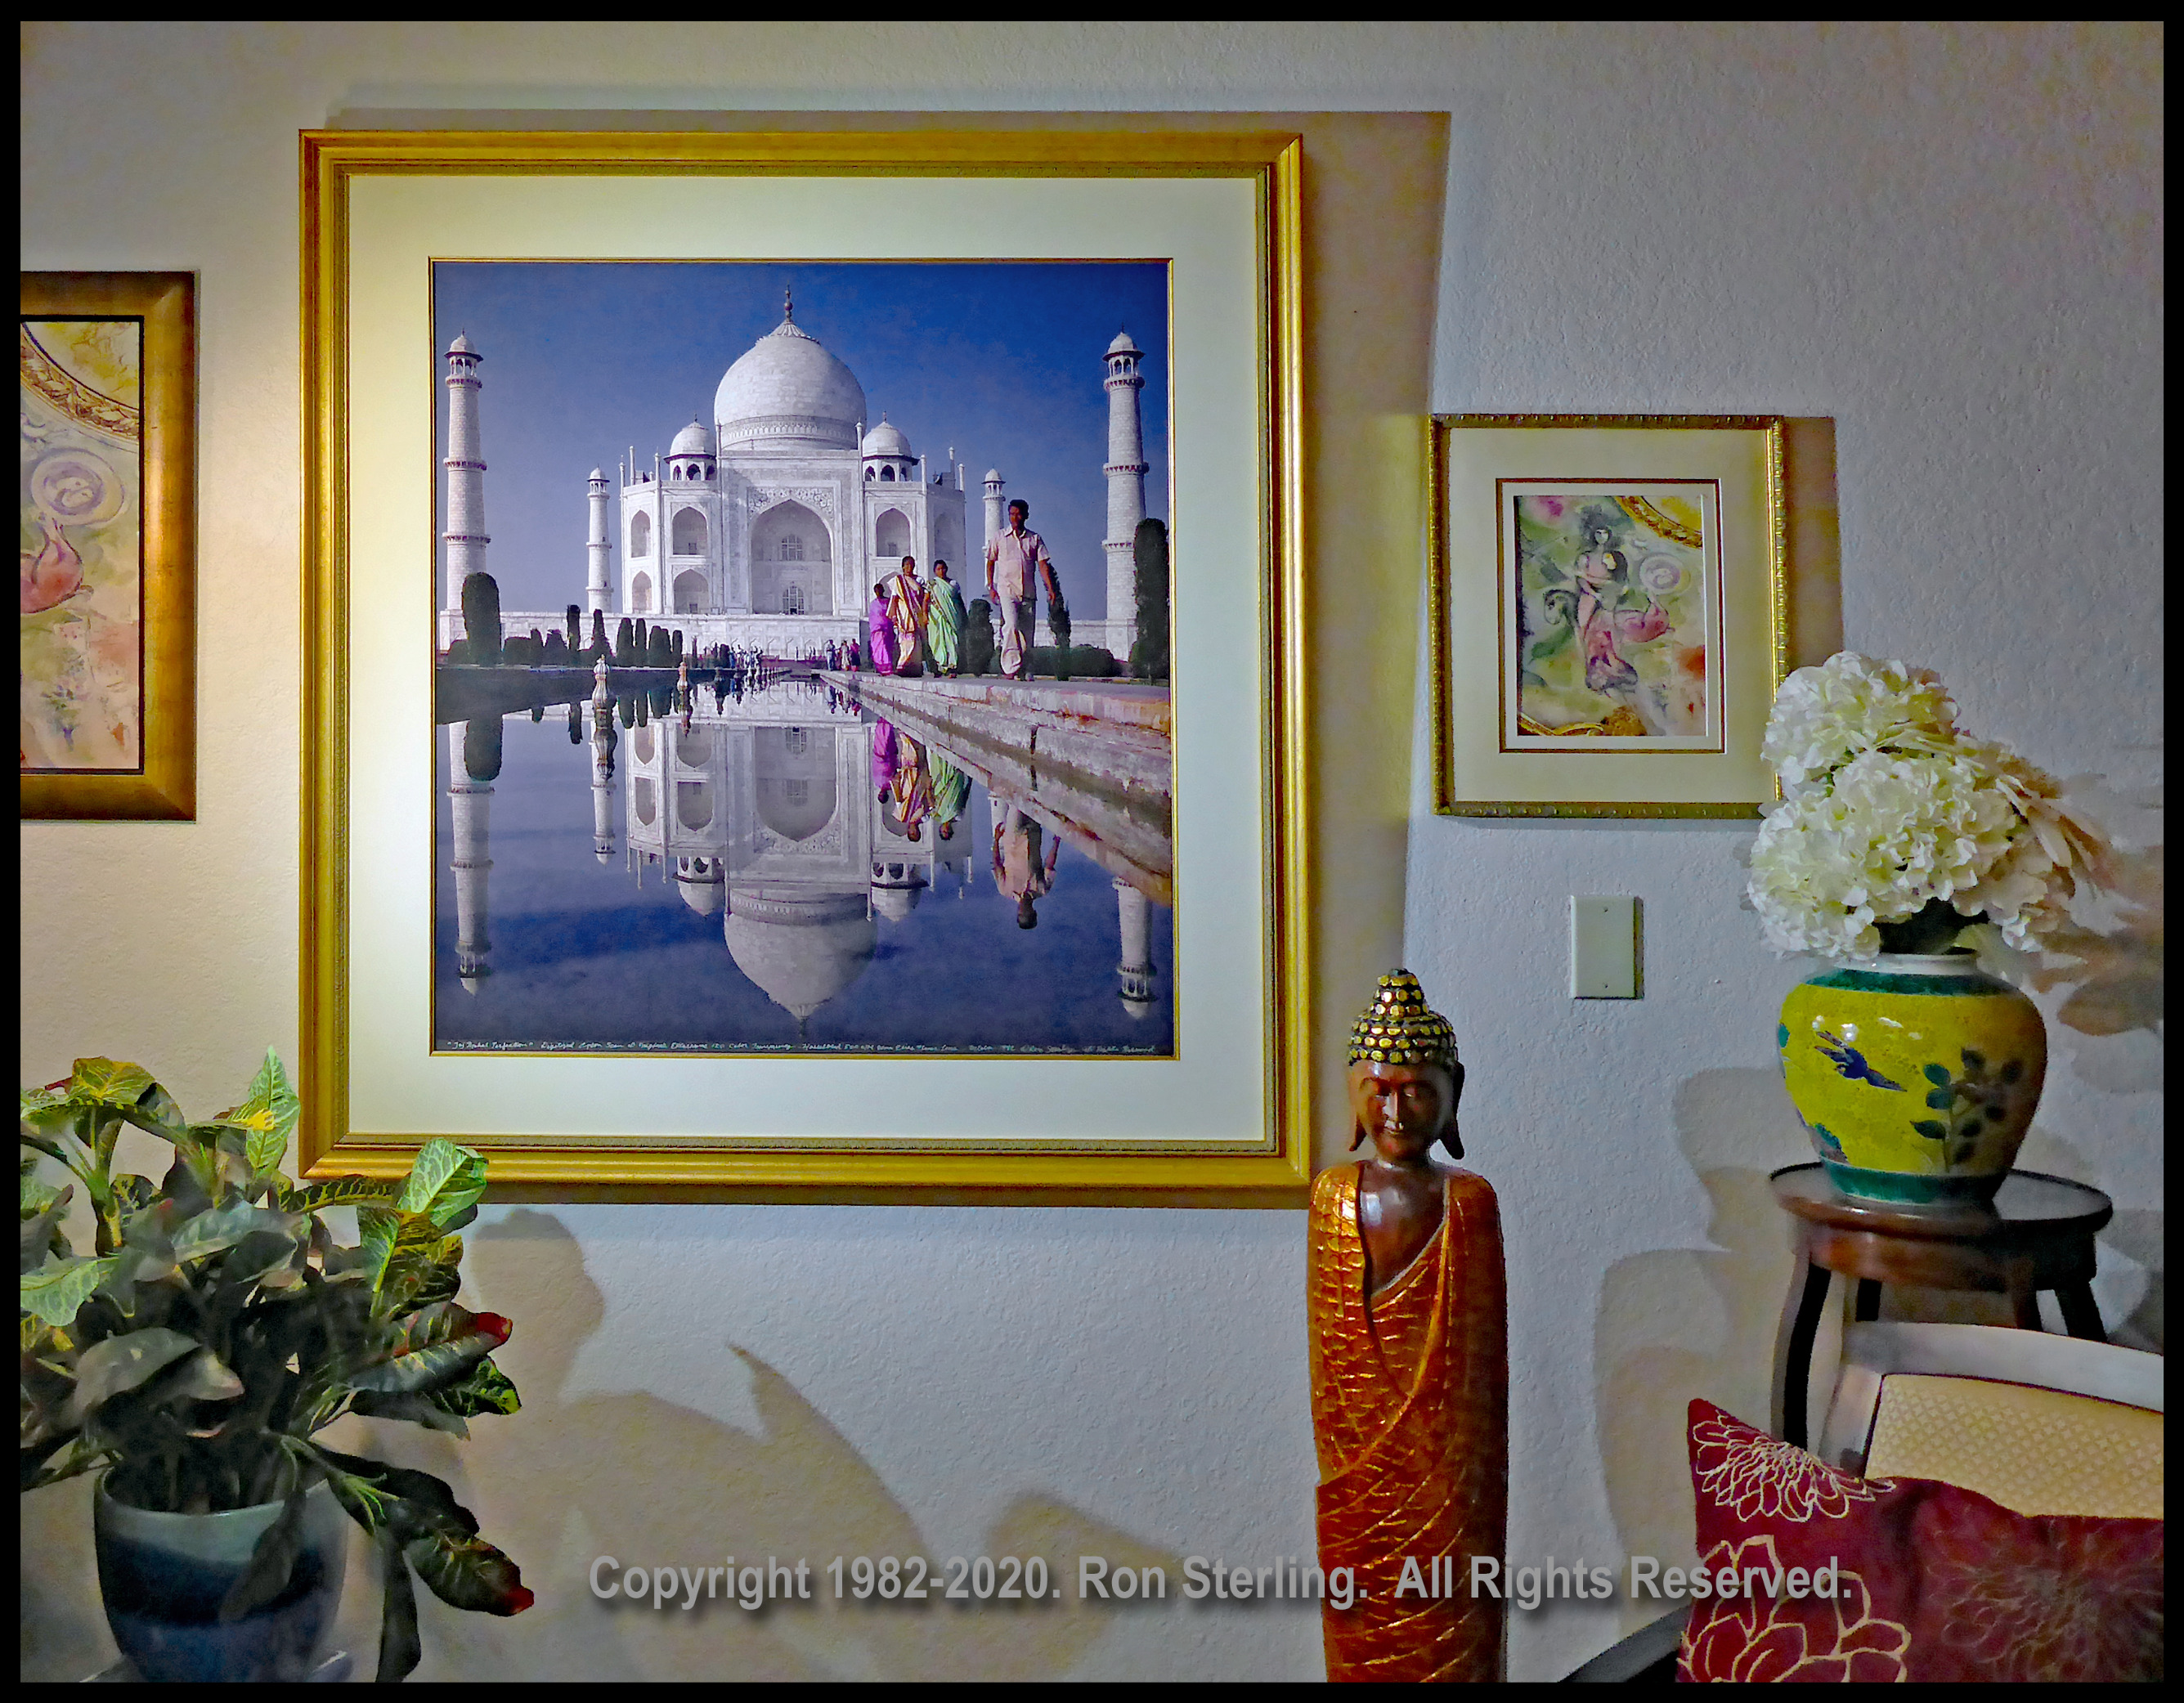 VF Framed Orig. Print Signed by Photographer of the Taj Mahal, October 1982.